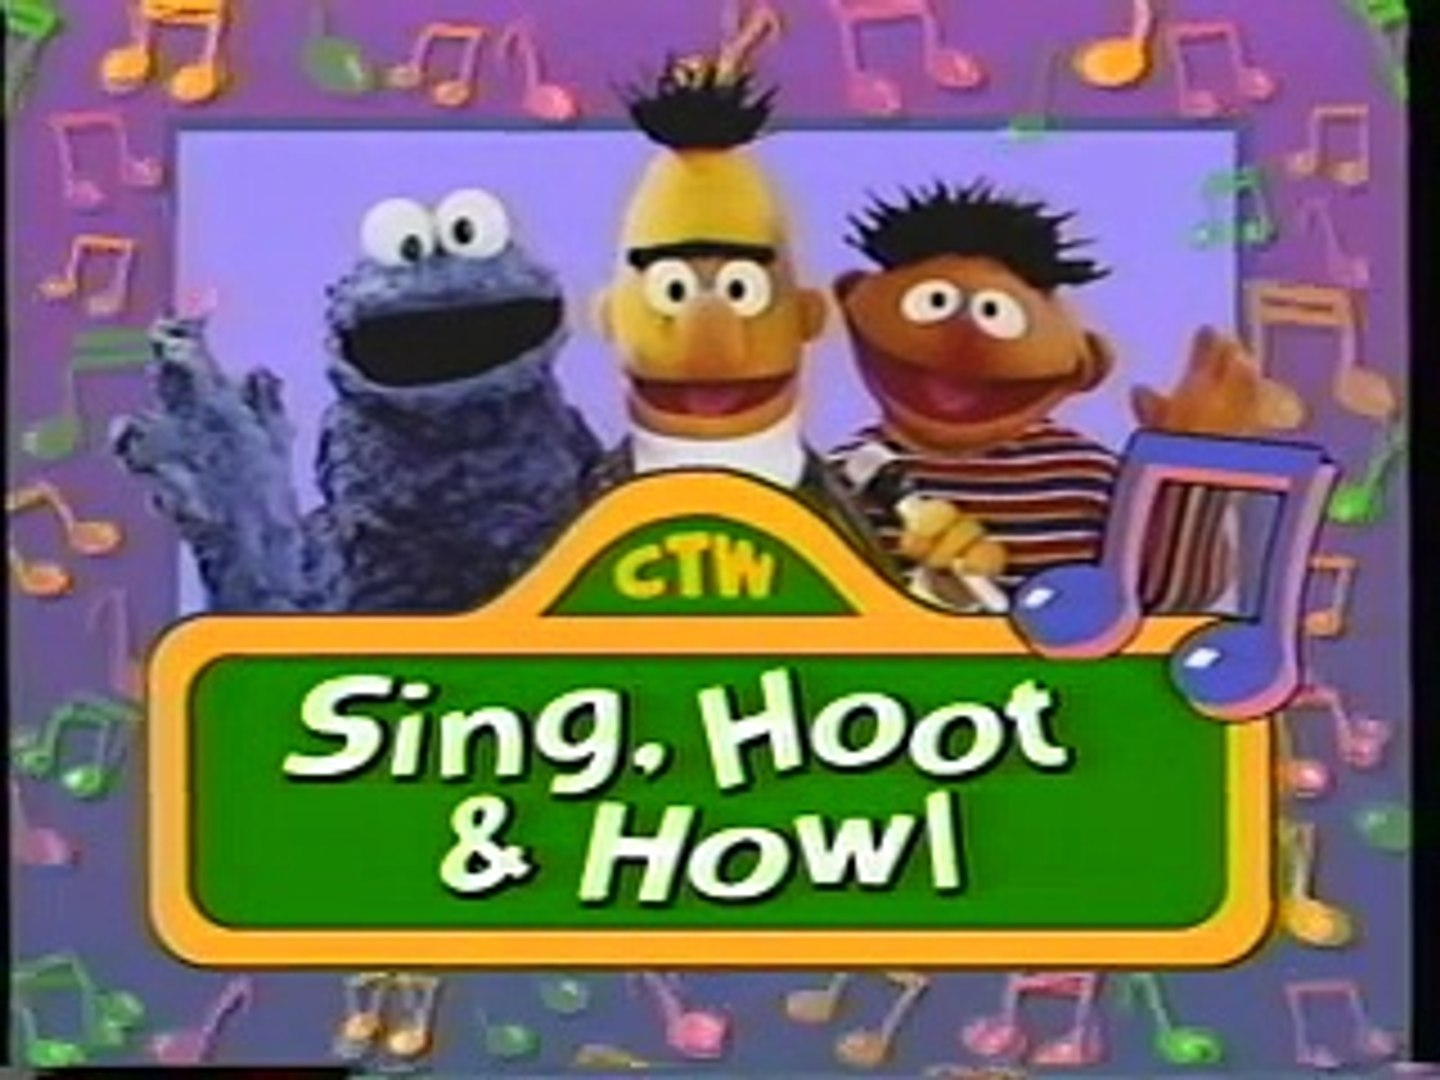 Opening & Closing To Sing, Hoot & Howl With The Sesame Street Animals  VHS(1996)